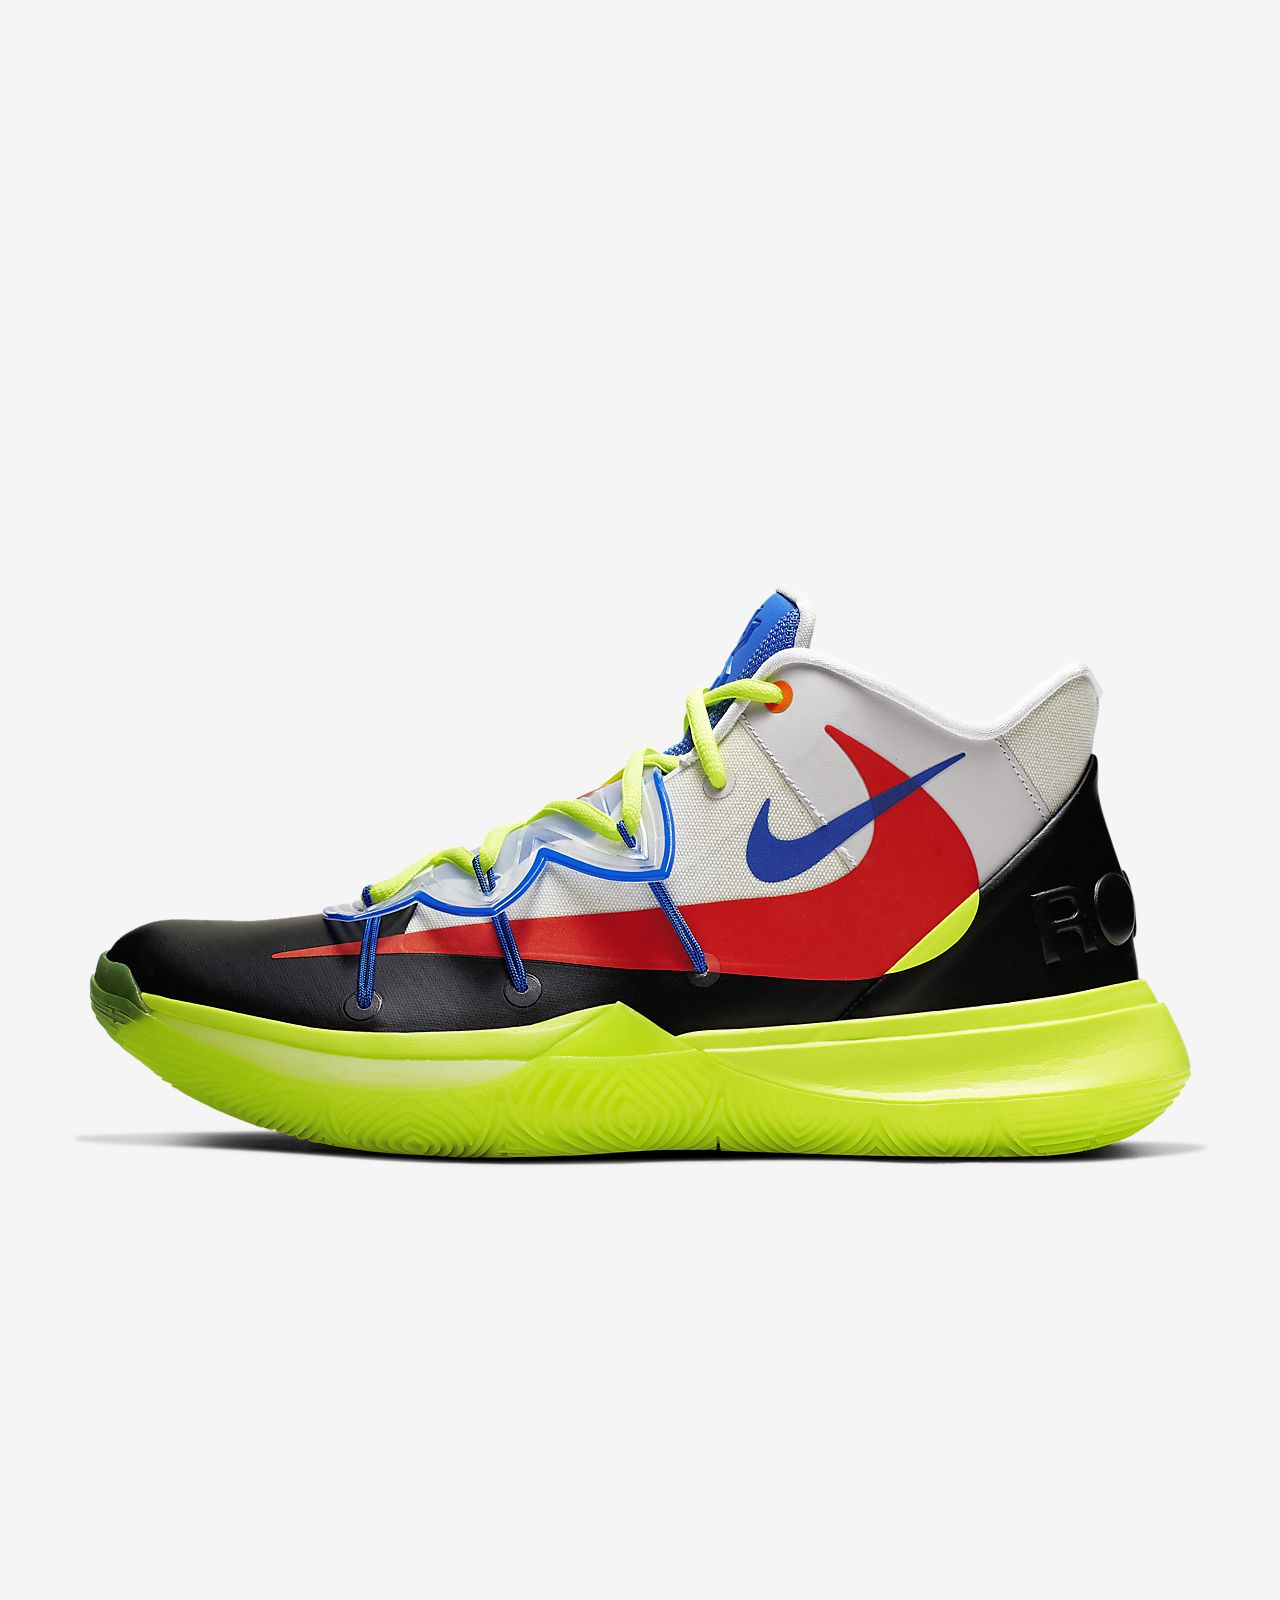 los angeles bf15d 1e3c4 Basketball Shoe. Kyrie 5 x ROKIT All Star